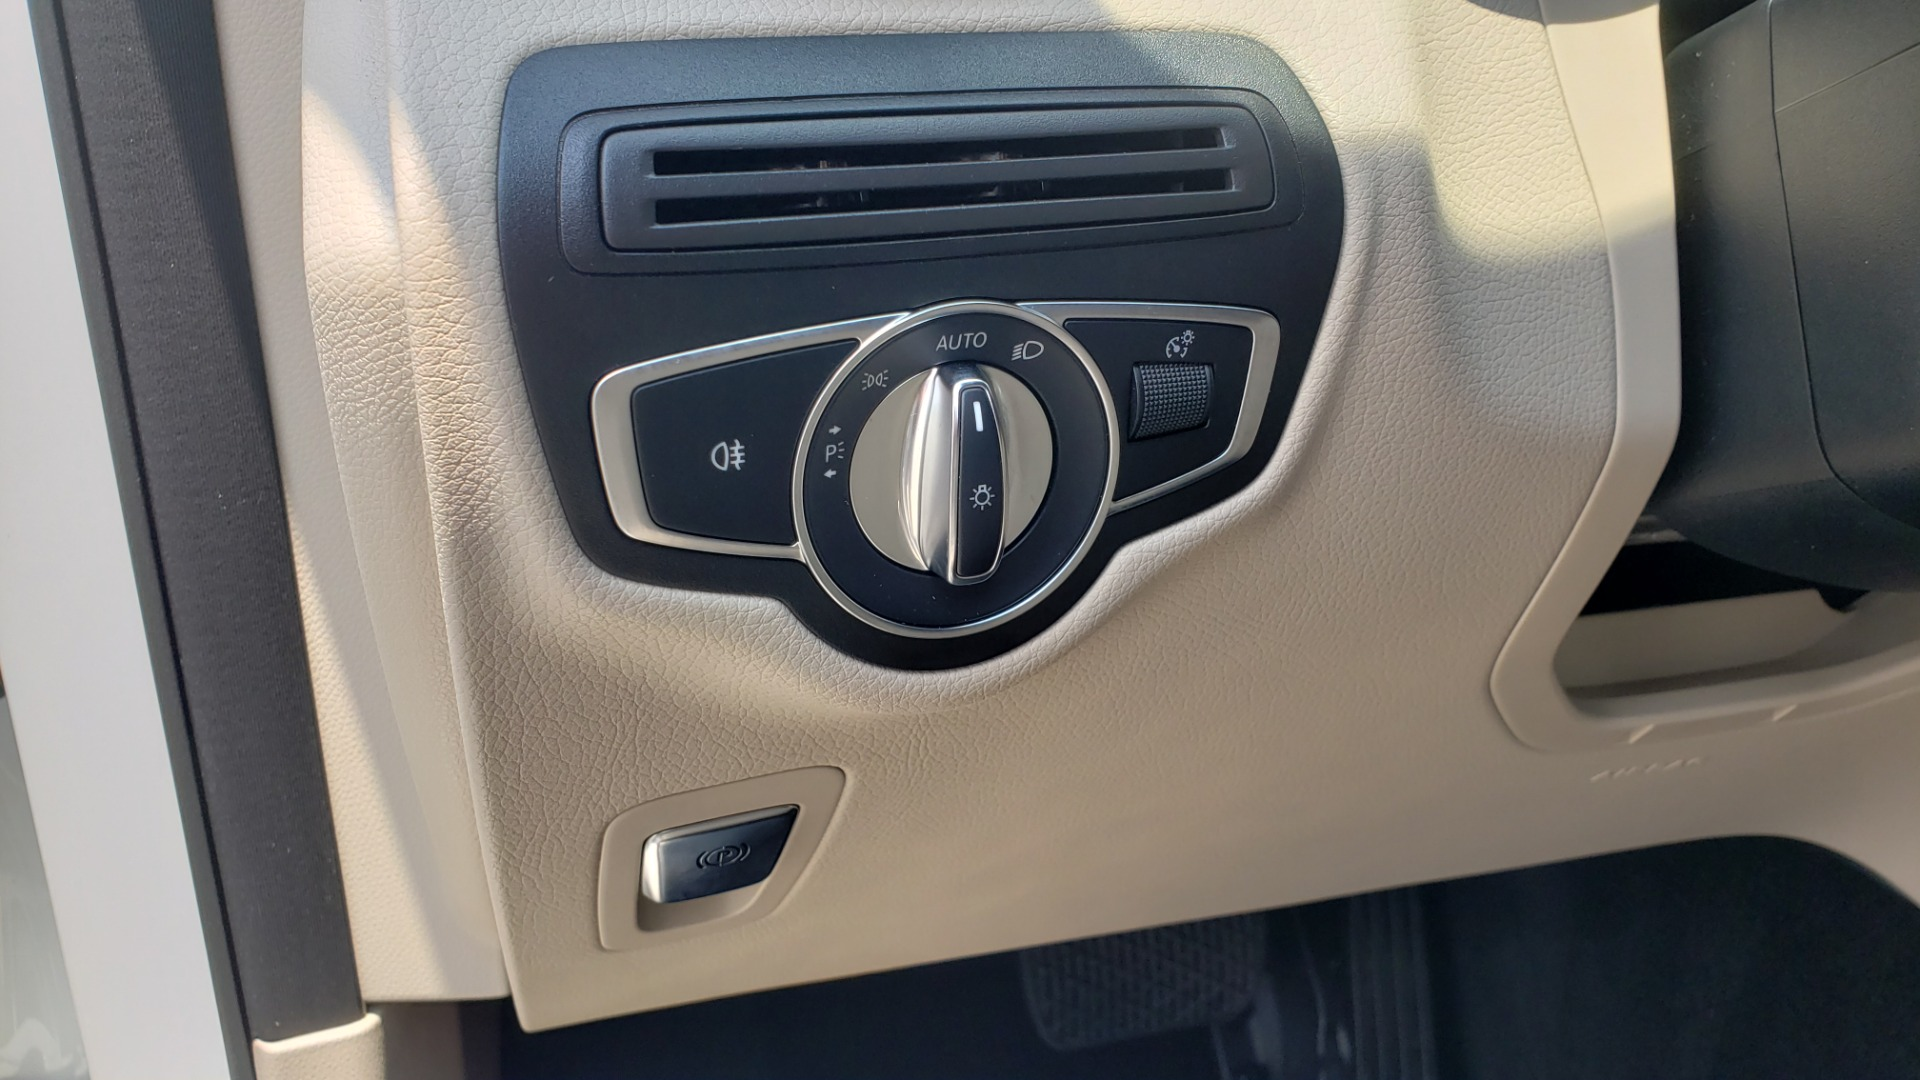 Used 2018 Mercedes-Benz GLC 300 PREMIUM 4MATIC / PANO-ROOF / BURMESTER / REARVIEW for sale $36,295 at Formula Imports in Charlotte NC 28227 40